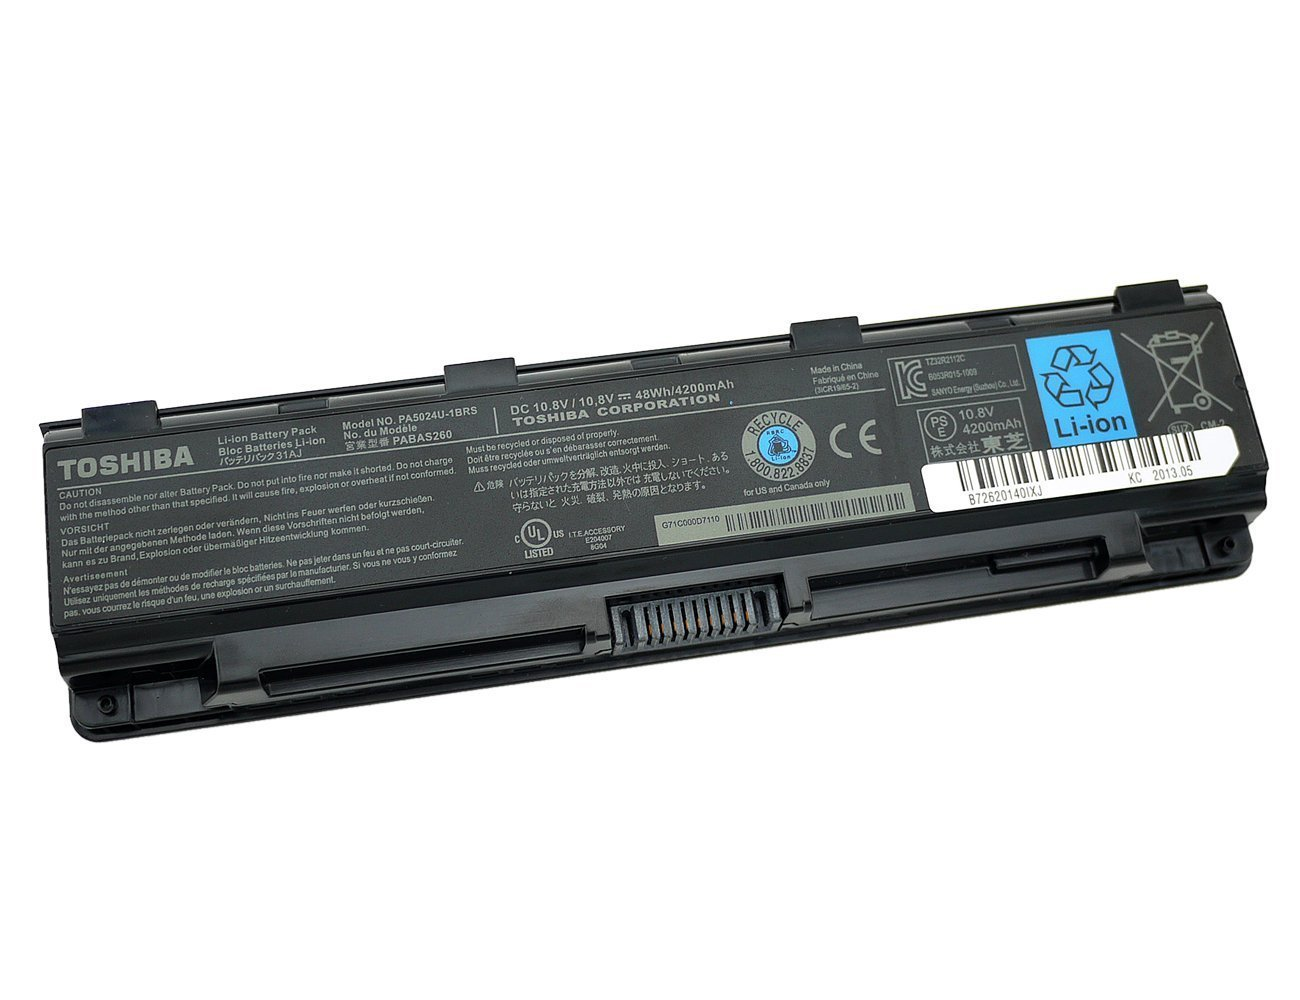 Toshiba Notebook Laptop Battery  BSSG71C000FT110 PABAS272 PA5109U 1BRS 48 Wh Li Ion 108 V in addition 3584 additionally High School Romance Story additionally Lfp Lithium Series Batteries moreover Cub electricity lesson05 activity1. on running batteries in series